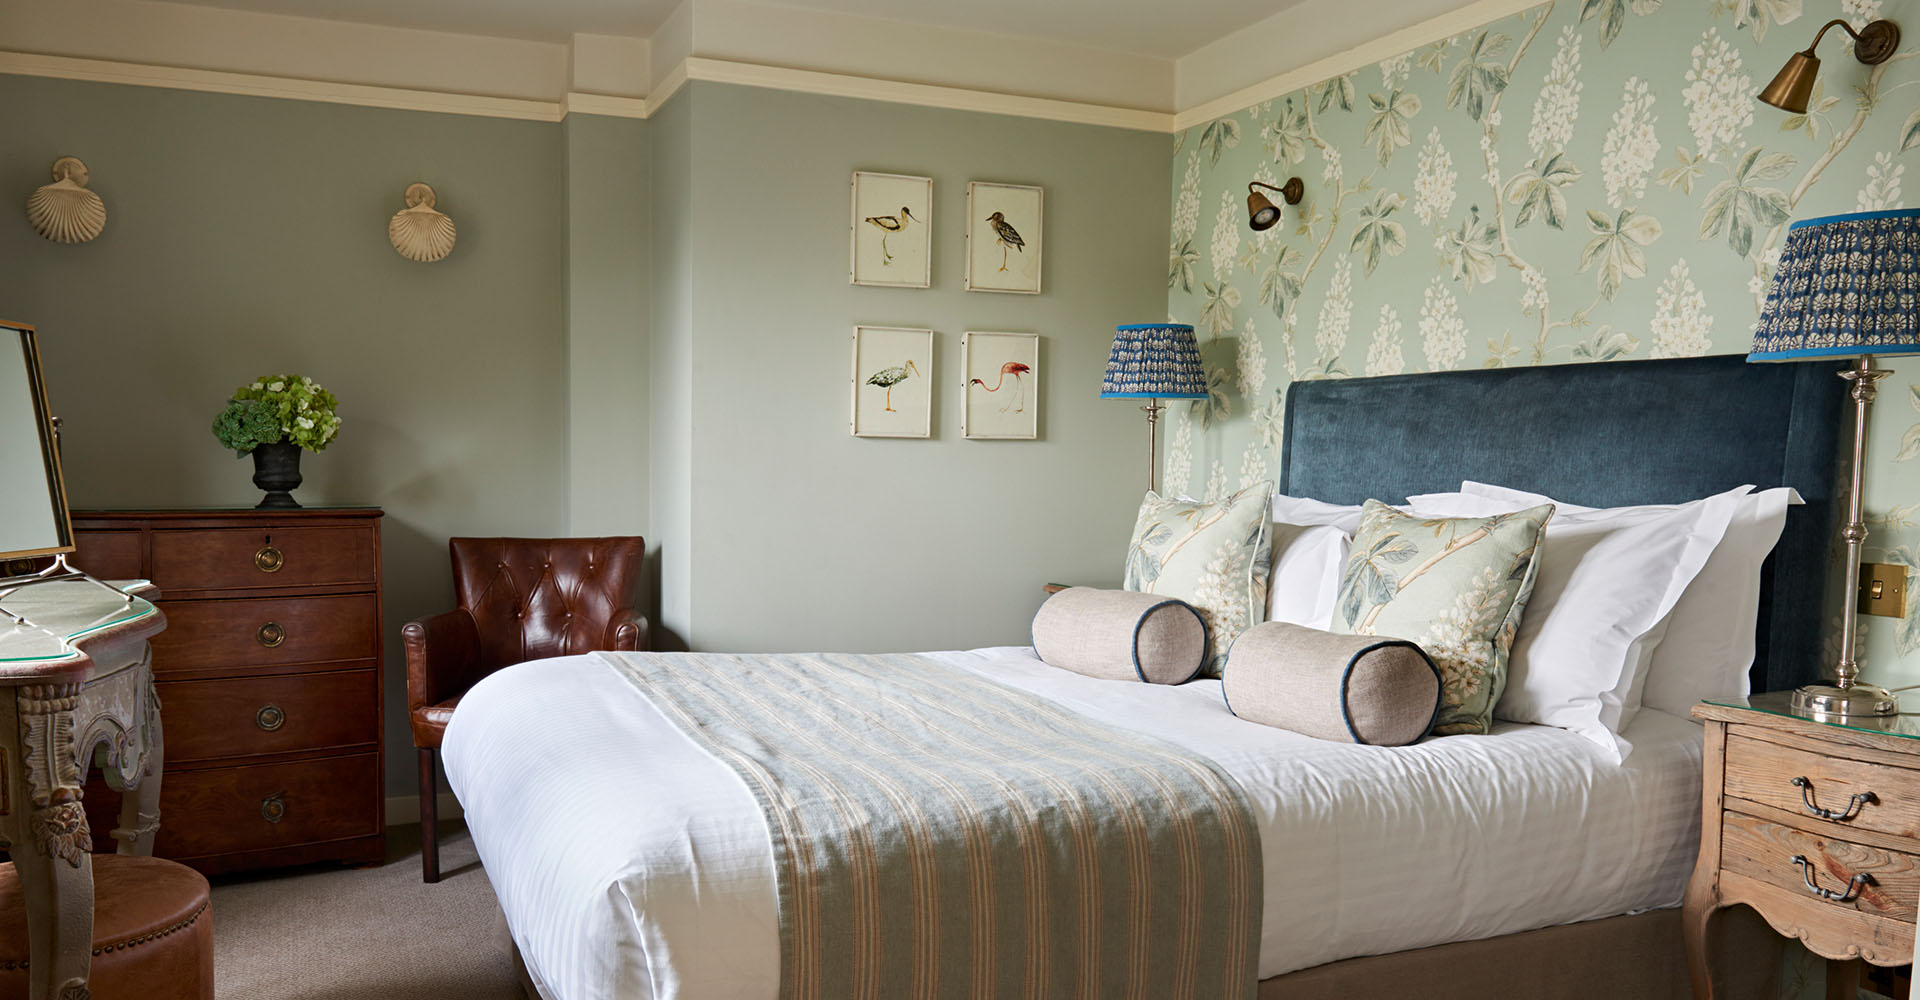 New Bedrooms at The Montagu Arms Hotel